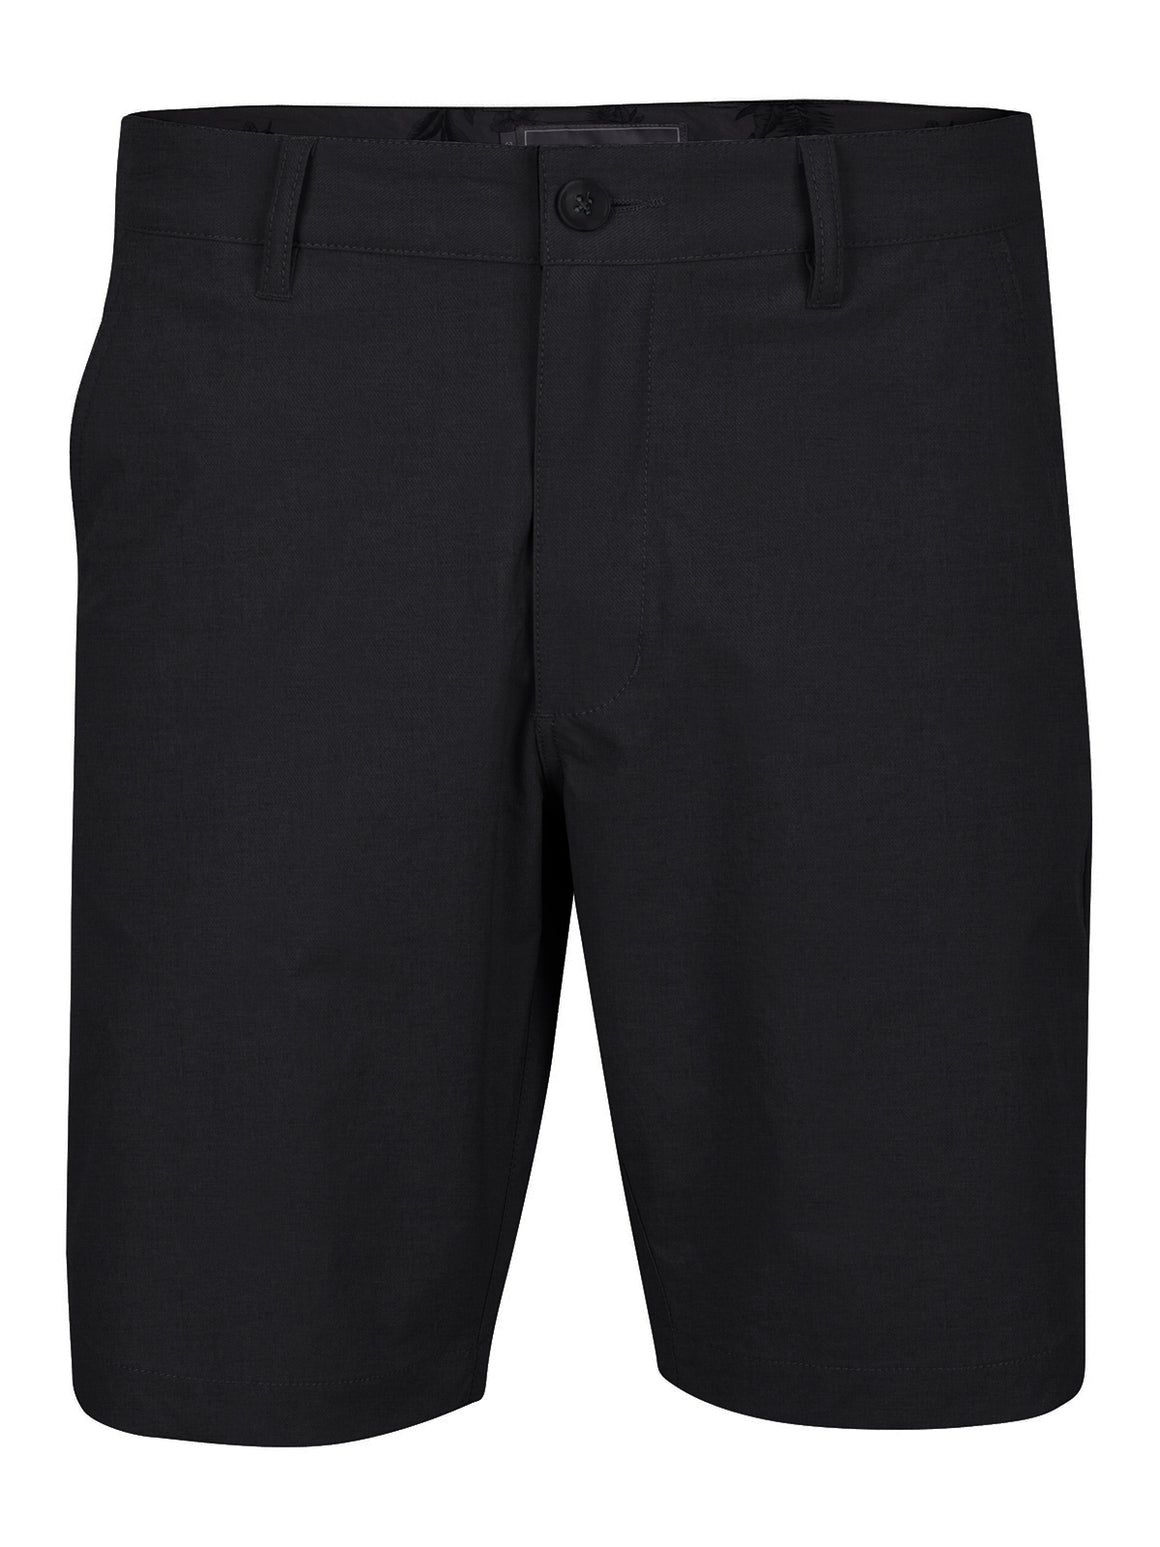 Traveler FIT101 Short - Black